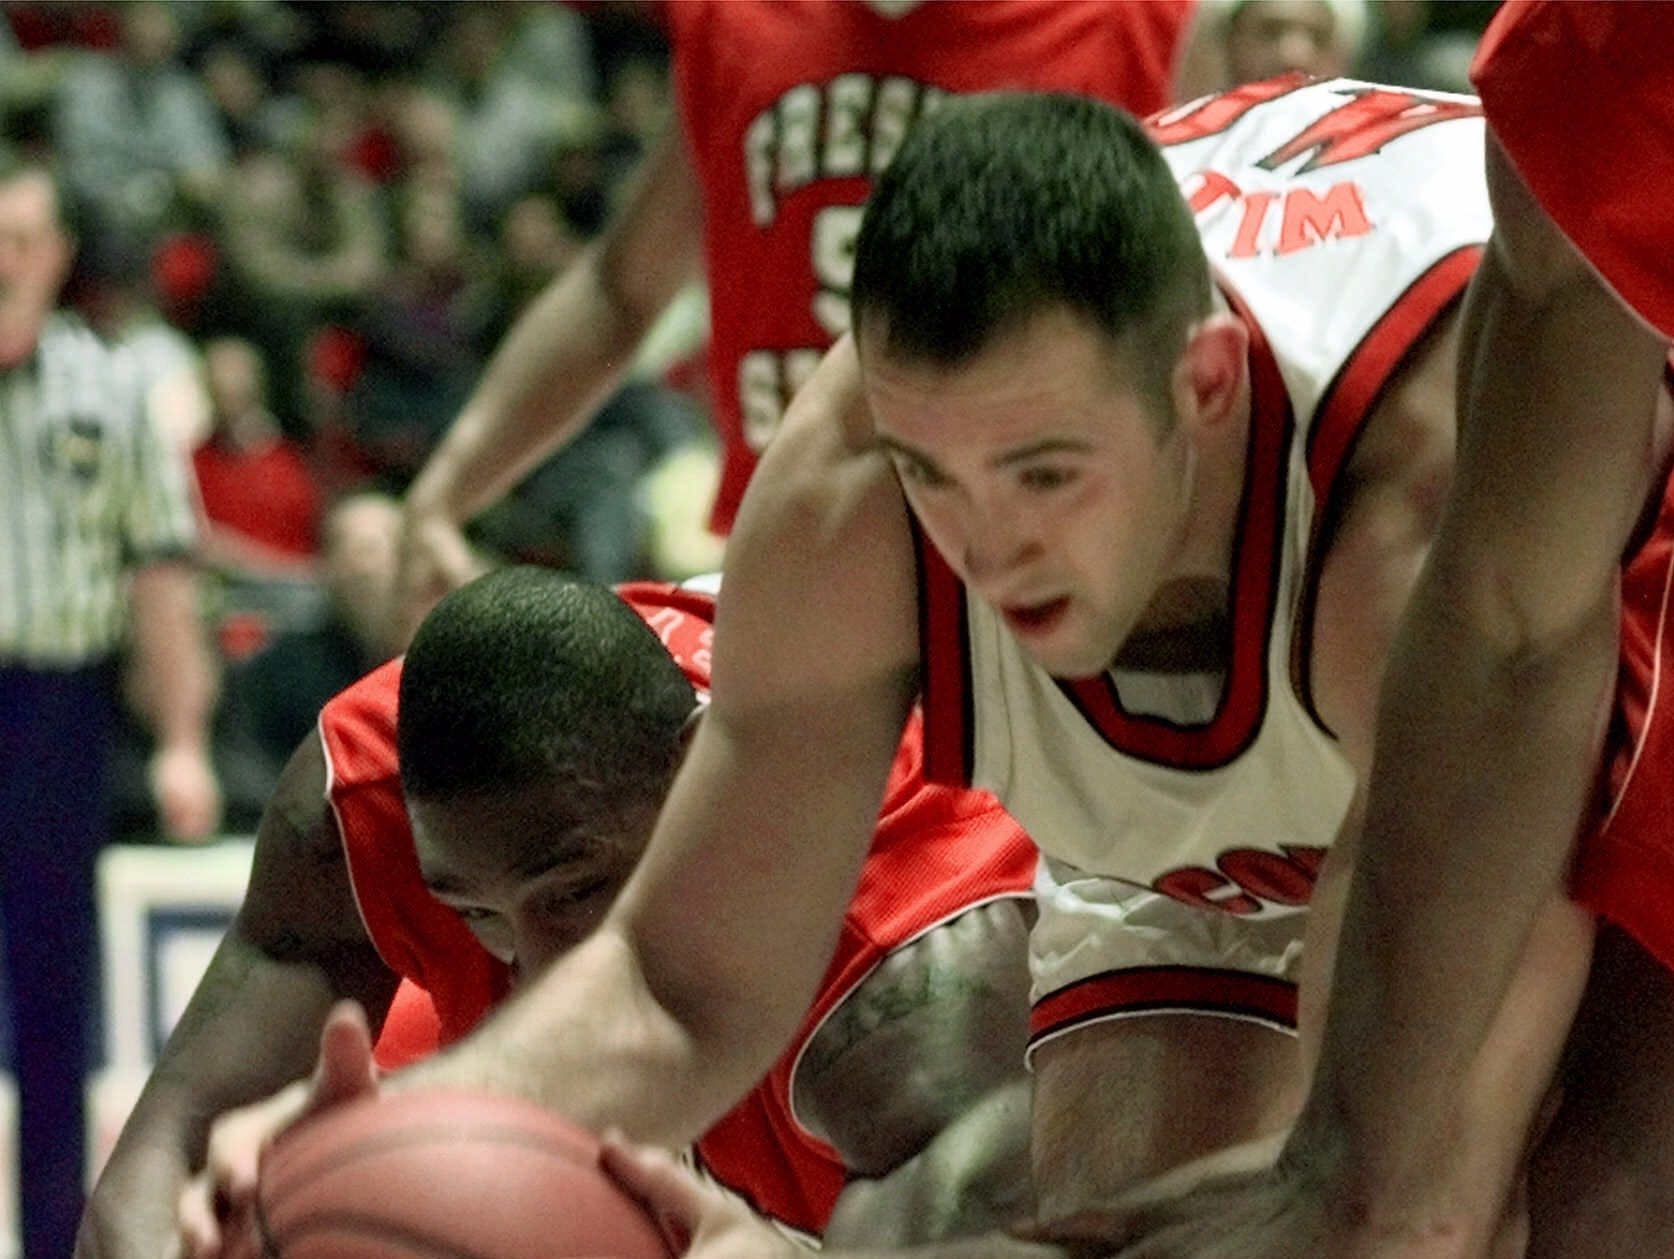 Wisconsin's Charlie Wills, right, comes in low past Fresno State's Larry Abney, left, to retrieve a loose ball in the first half of their first-round NCAA West Regional game in Salt Lake City, Thursday, March 16, 2000.